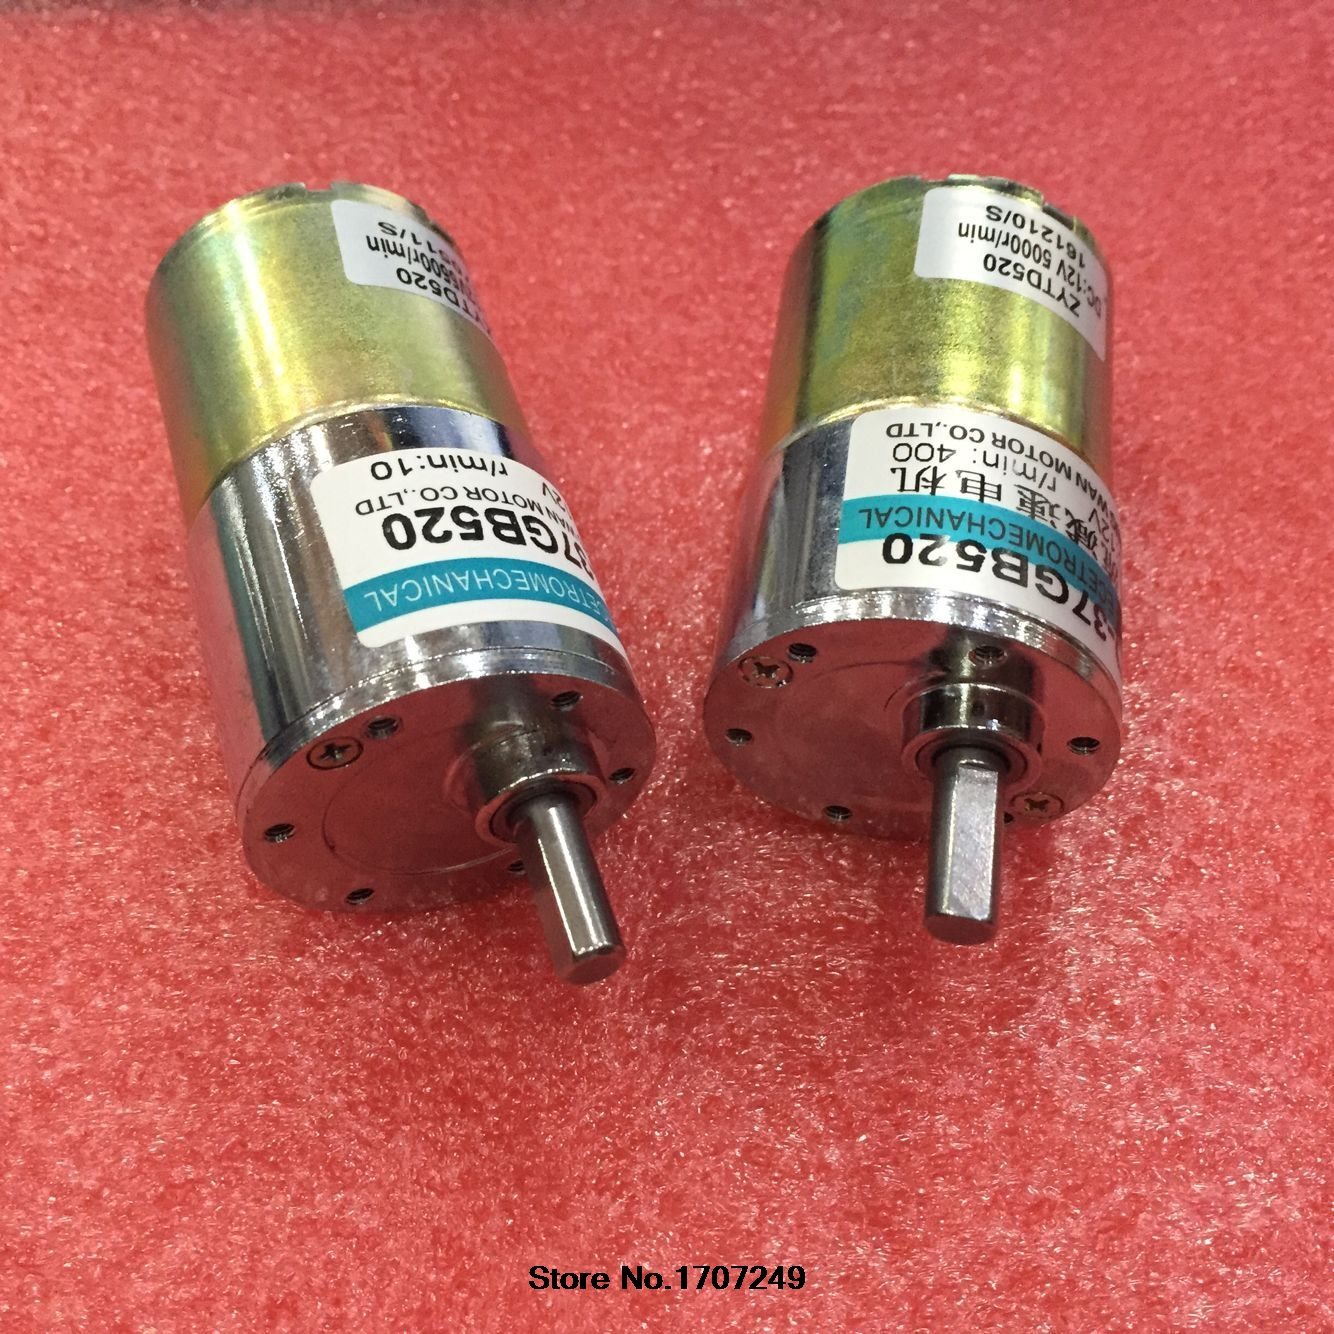 Free Shipping 12V / 24V <font><b>10W</b></font> miniature <font><b>DC</b></font> geared <font><b>motor</b></font> low speed high torque can adjustable speed / reversible electric tools image